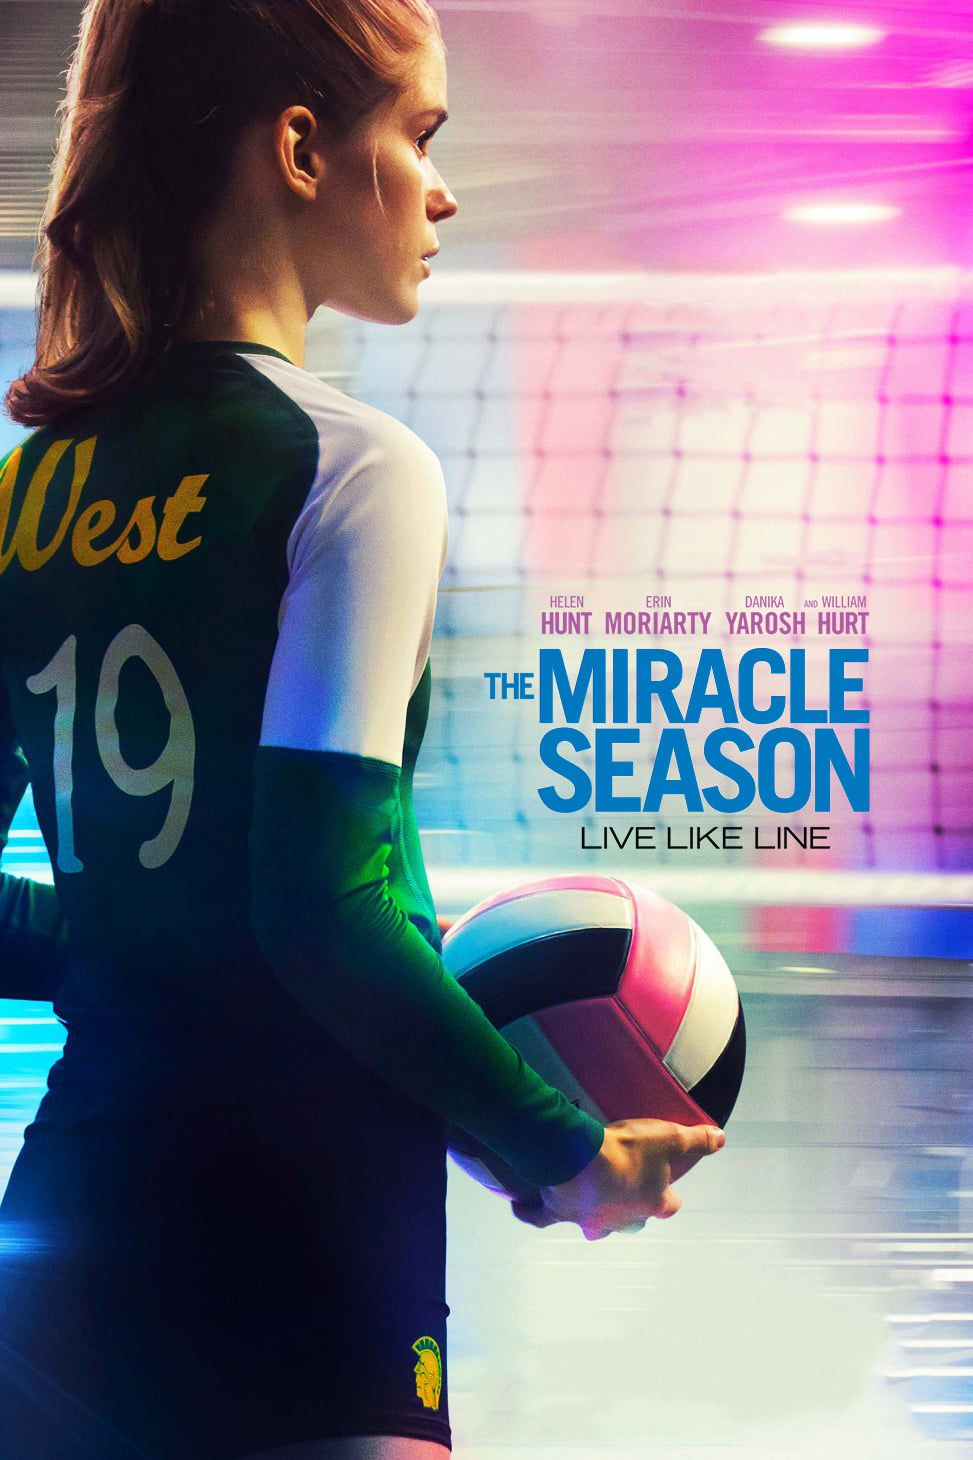 The Miracle Season 2018 In 2020 The Miracle Season Streaming Movies Free Full Movies Online Free